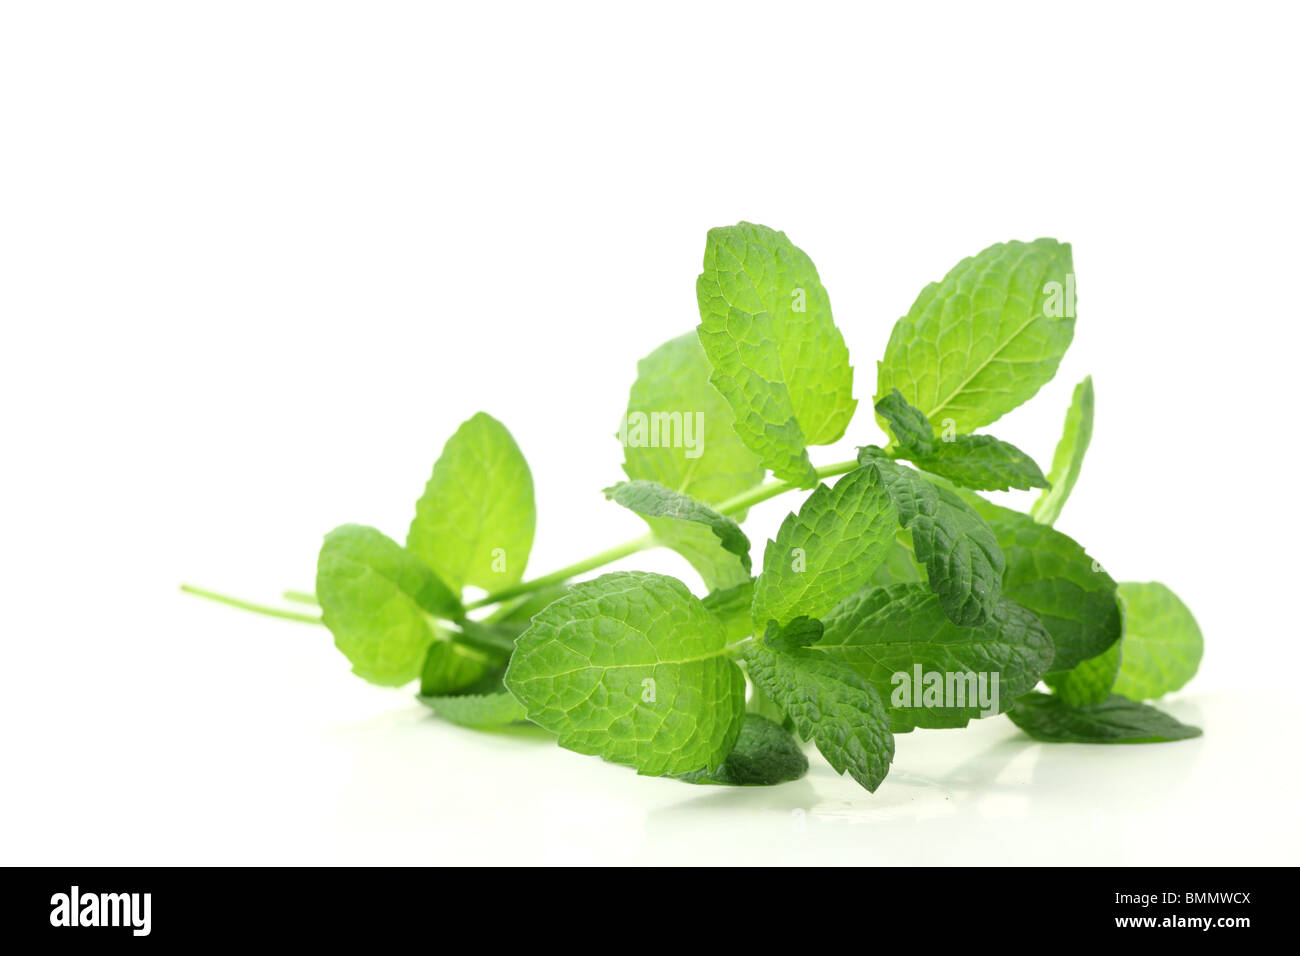 Fresh mint leaves isolated on white. - Stock Image